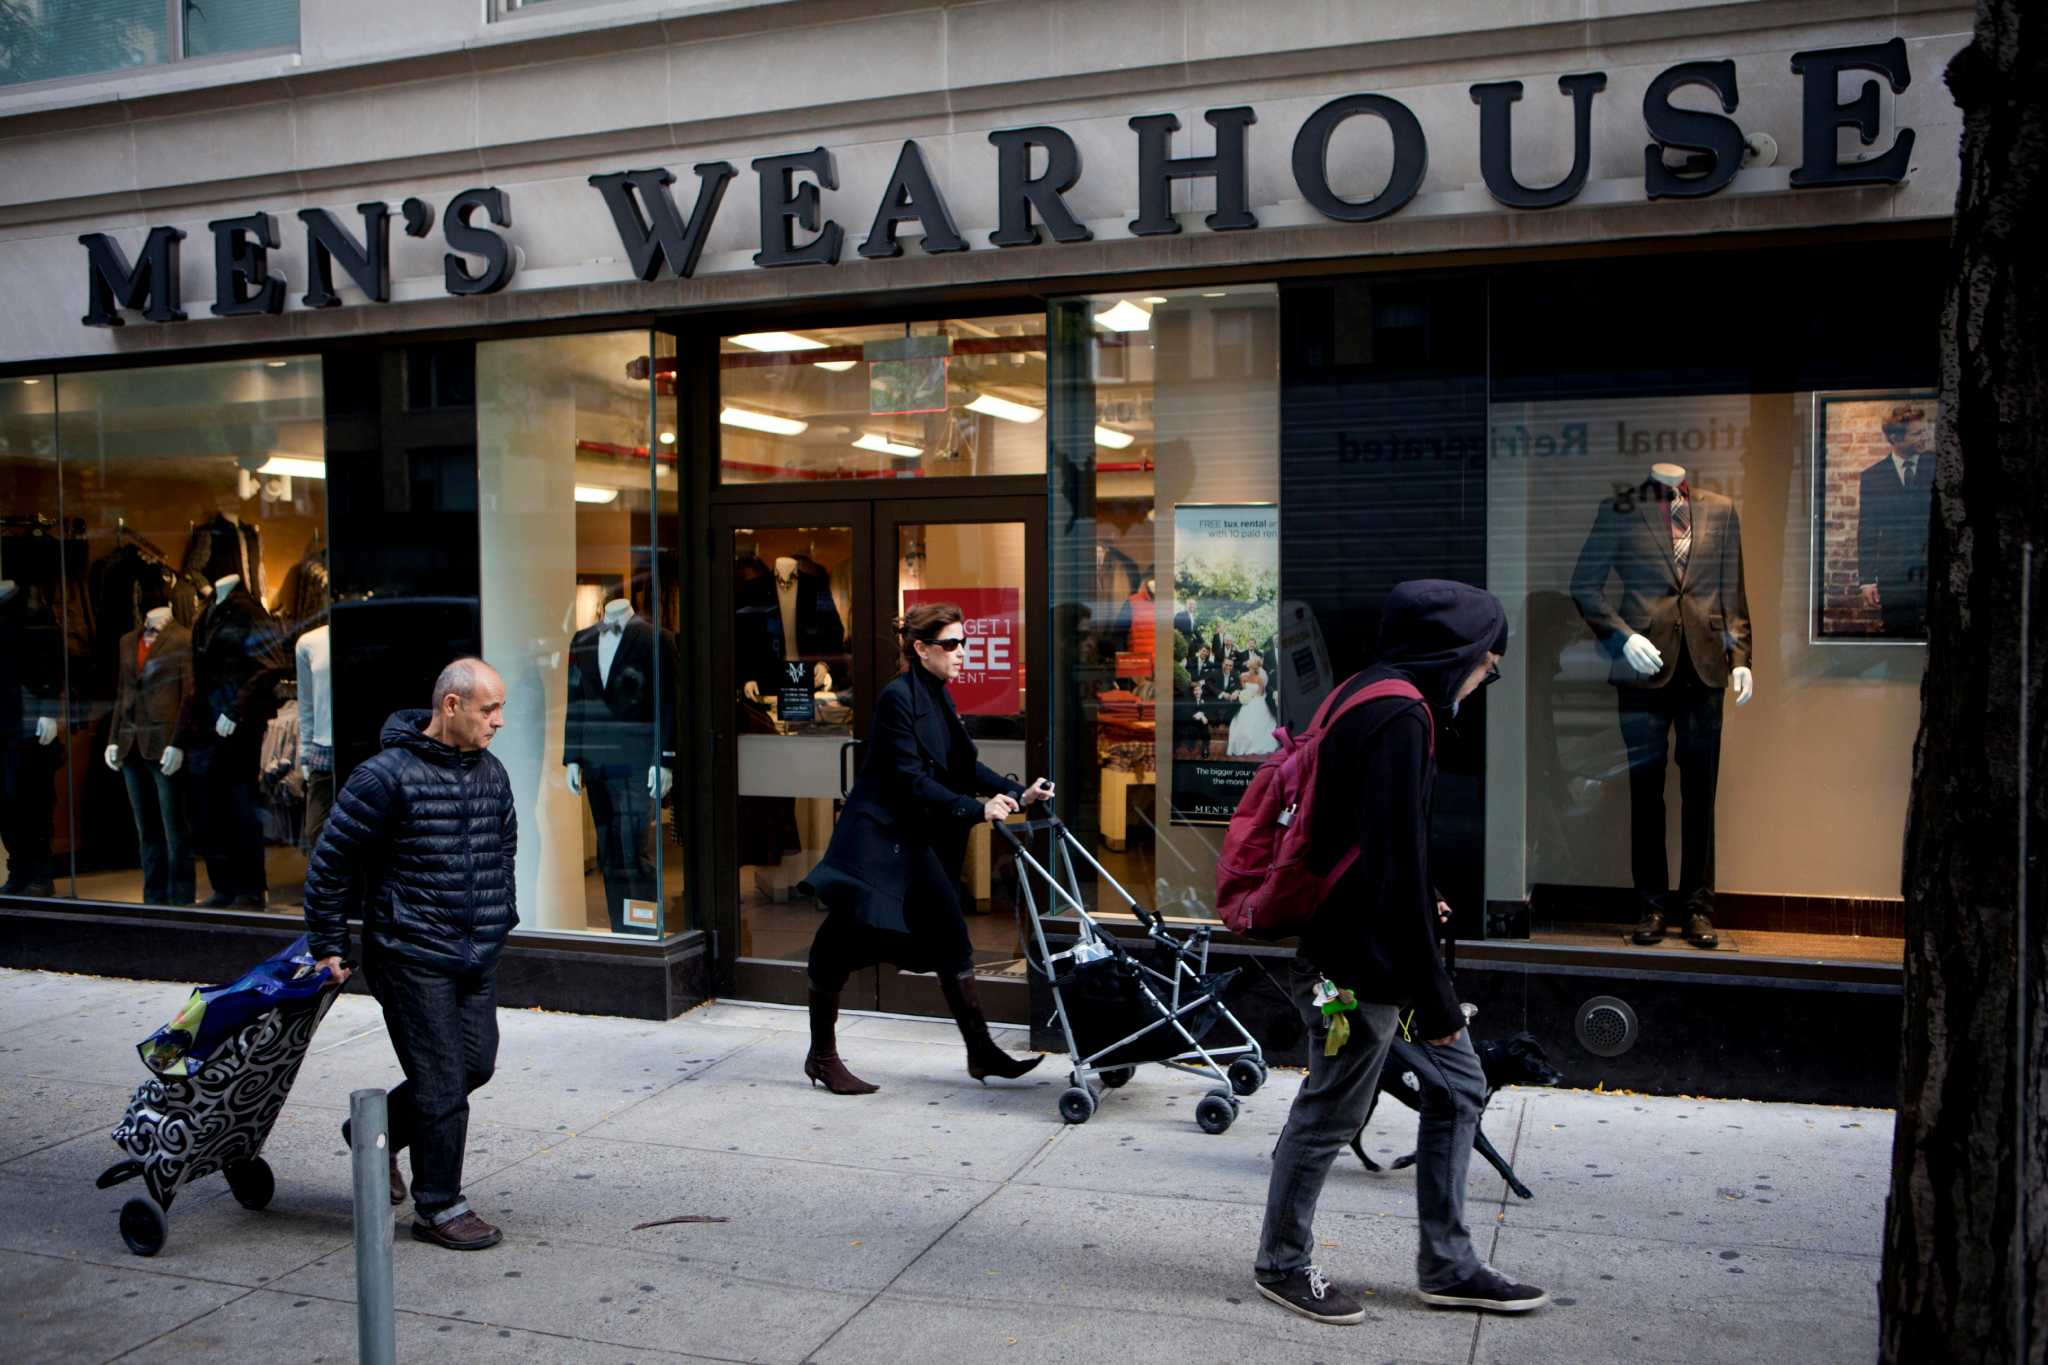 Head to Men's Wearhouse in Brownsville, where you can shop all the latest fashion trends and hottest looks of the season. Texas > Brownsville > Retail; Men's Wearhouse. When you sign up for exclusive hot offers from Mens Wearhouse via mobile messages, you'll not only get the best deals, but to start you'll get a code for $10 off your Location: Pablo Kisel Boulevard, Brownsville, , TX.